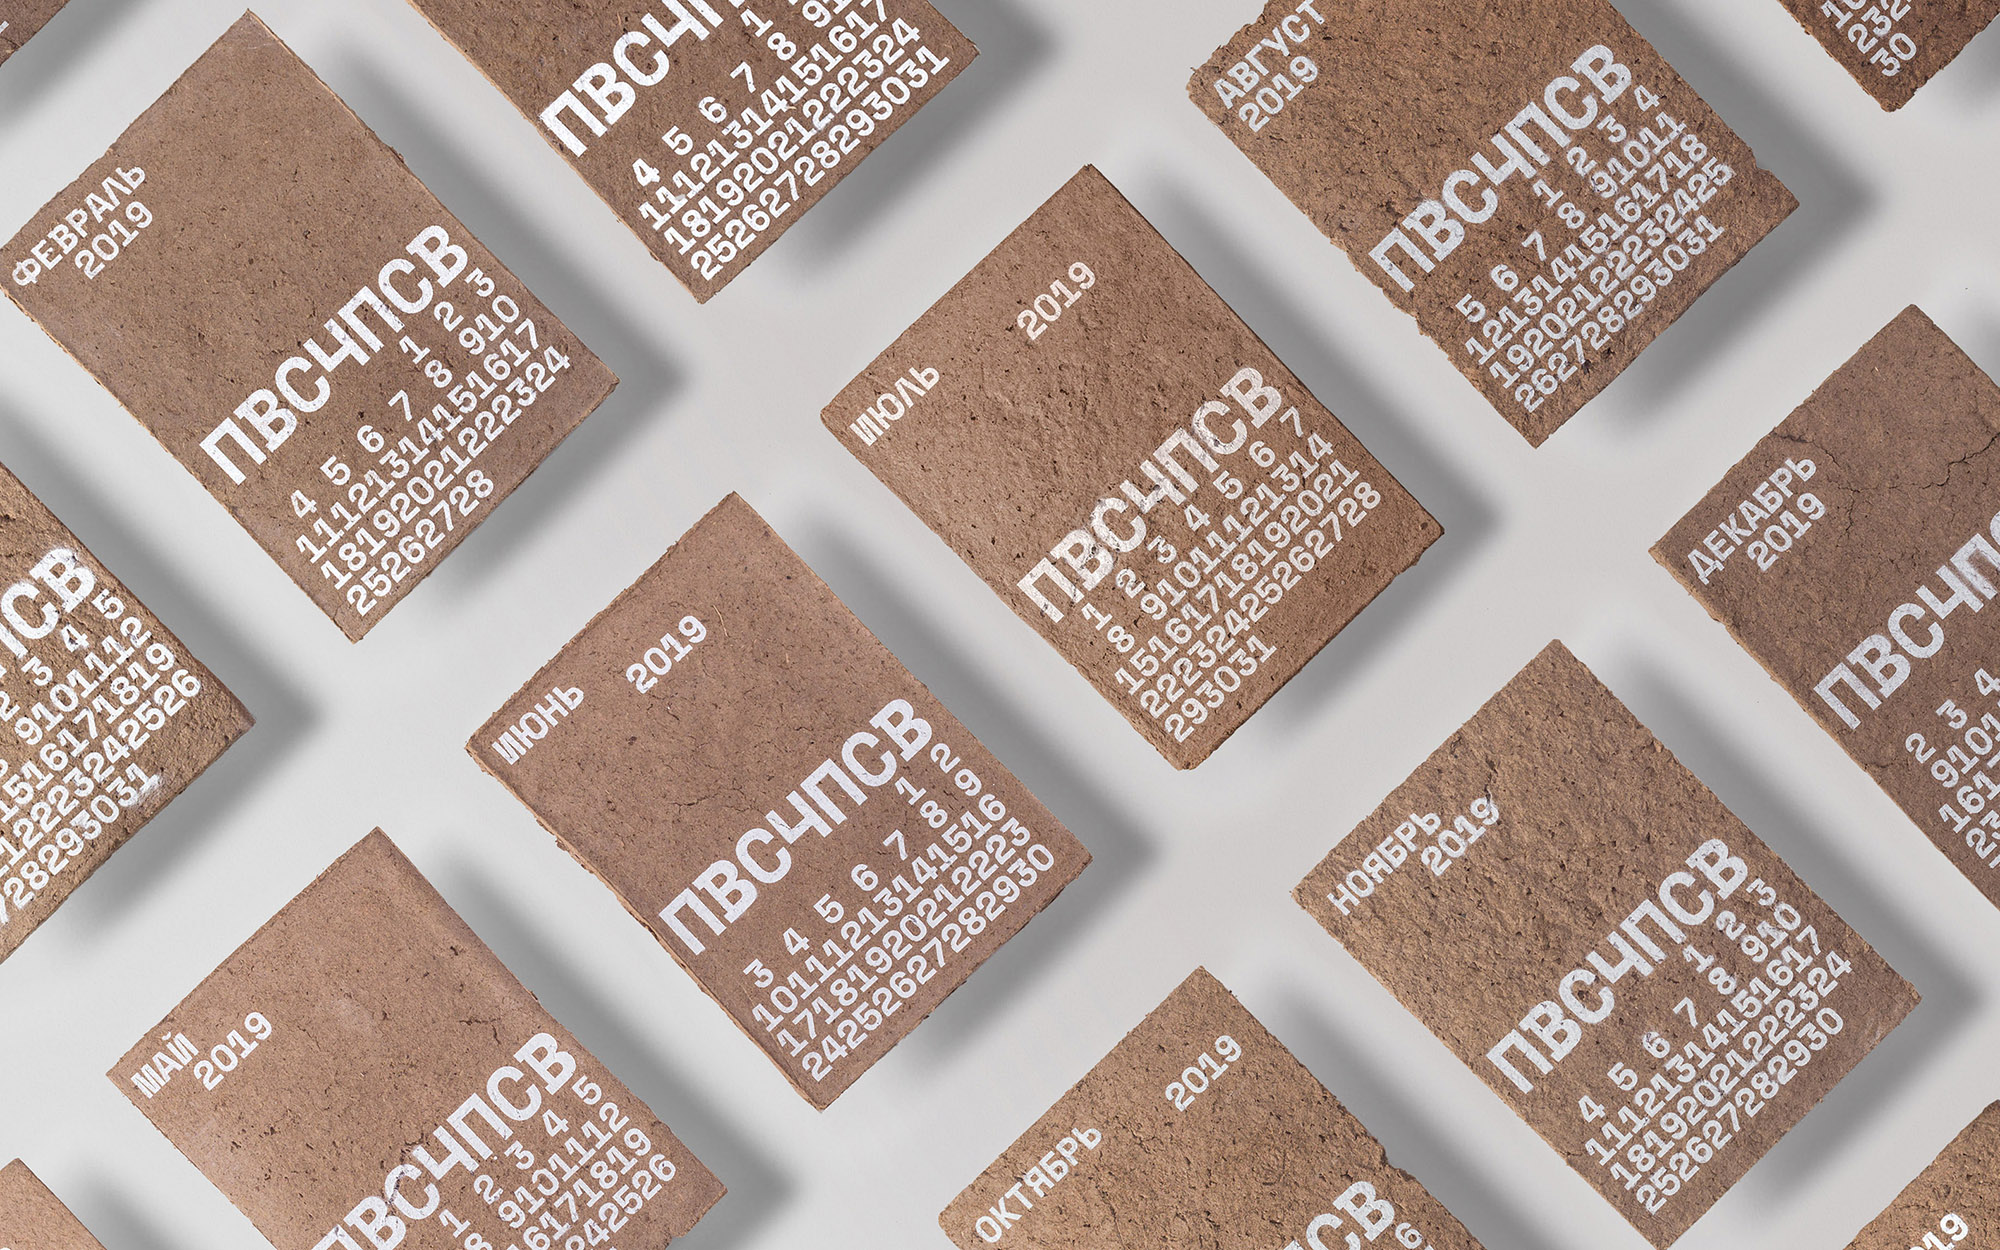 Production and Packaging Eco Peat Calendar